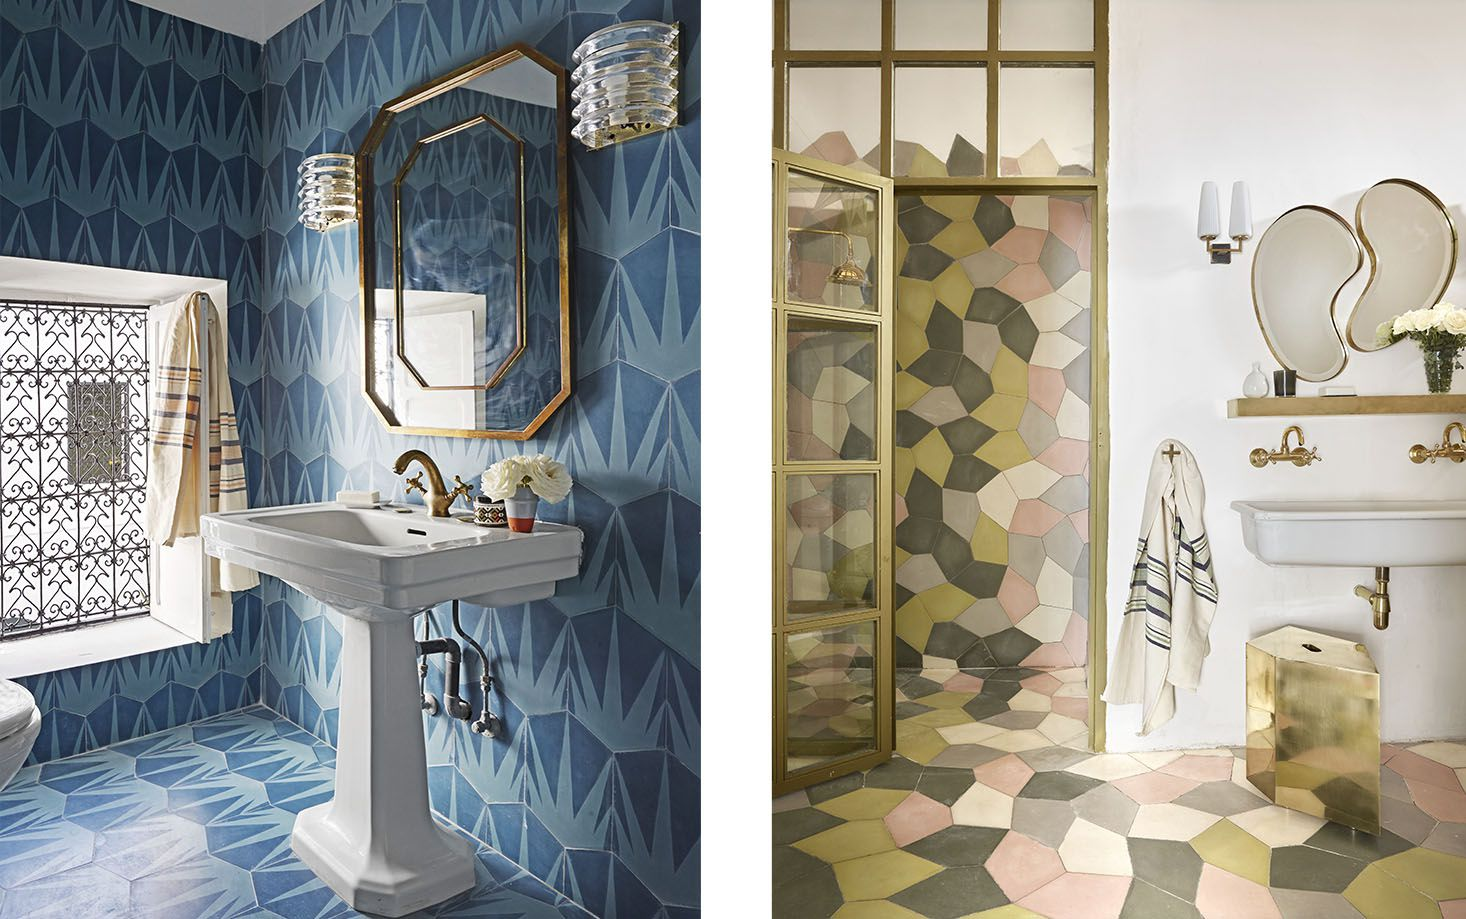 The guest bathroom's sink was purchased at a flea market, the fixtures are from the Mellah district of Marrakech, and the sconces are 1970s Italian.  Right:  In the master bath, the sink is from Marrakech. The brass shelf and mirrors are by Popham+, and the 1950s sconce is French